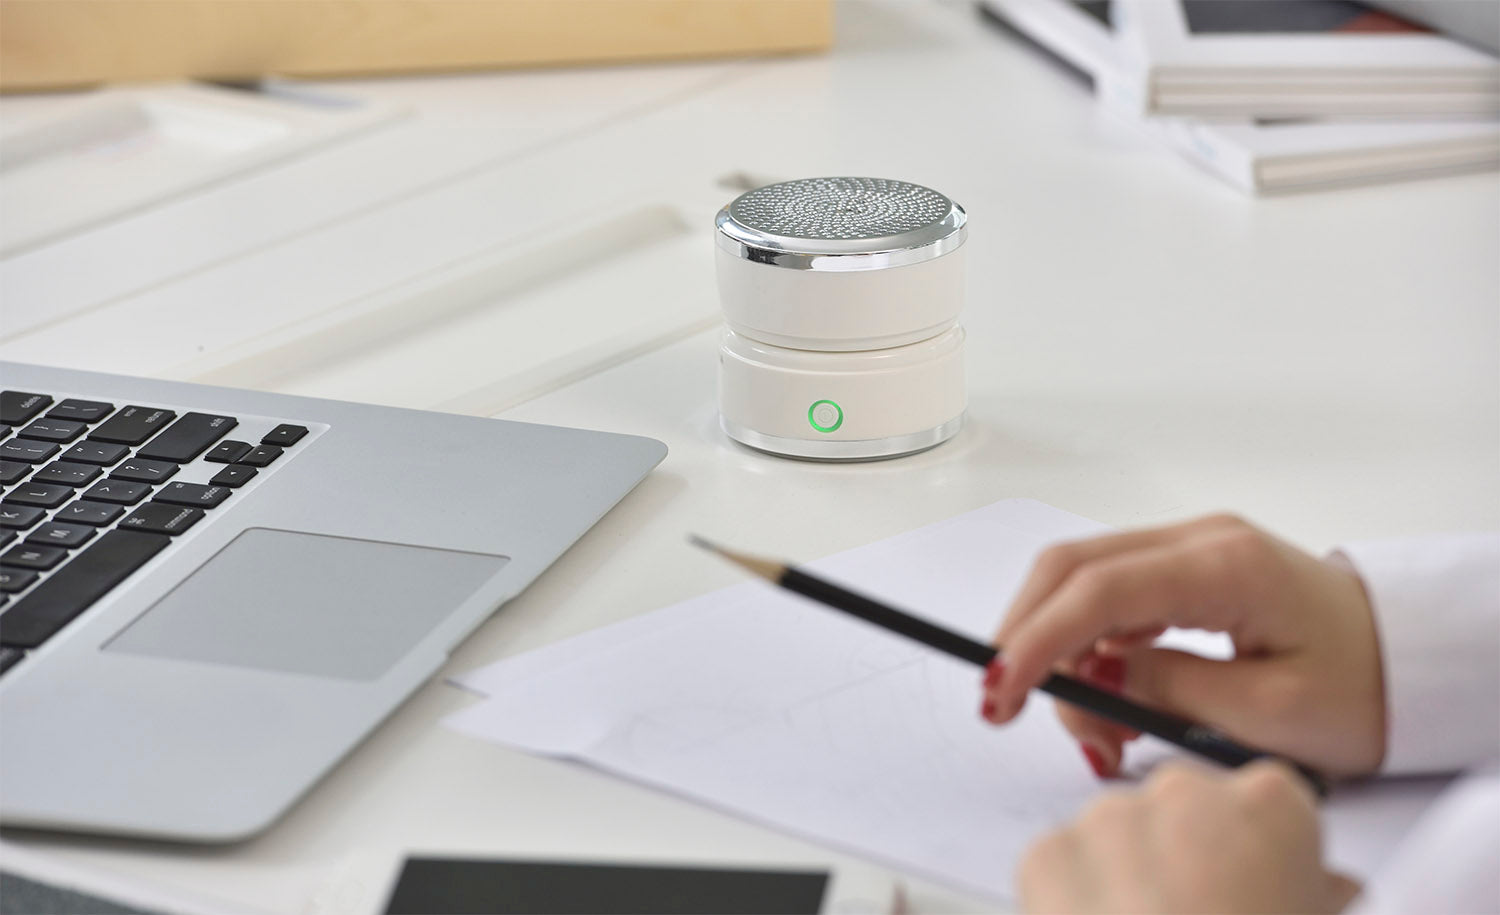 #9 gifts for boyfriends mom: personal air purifier